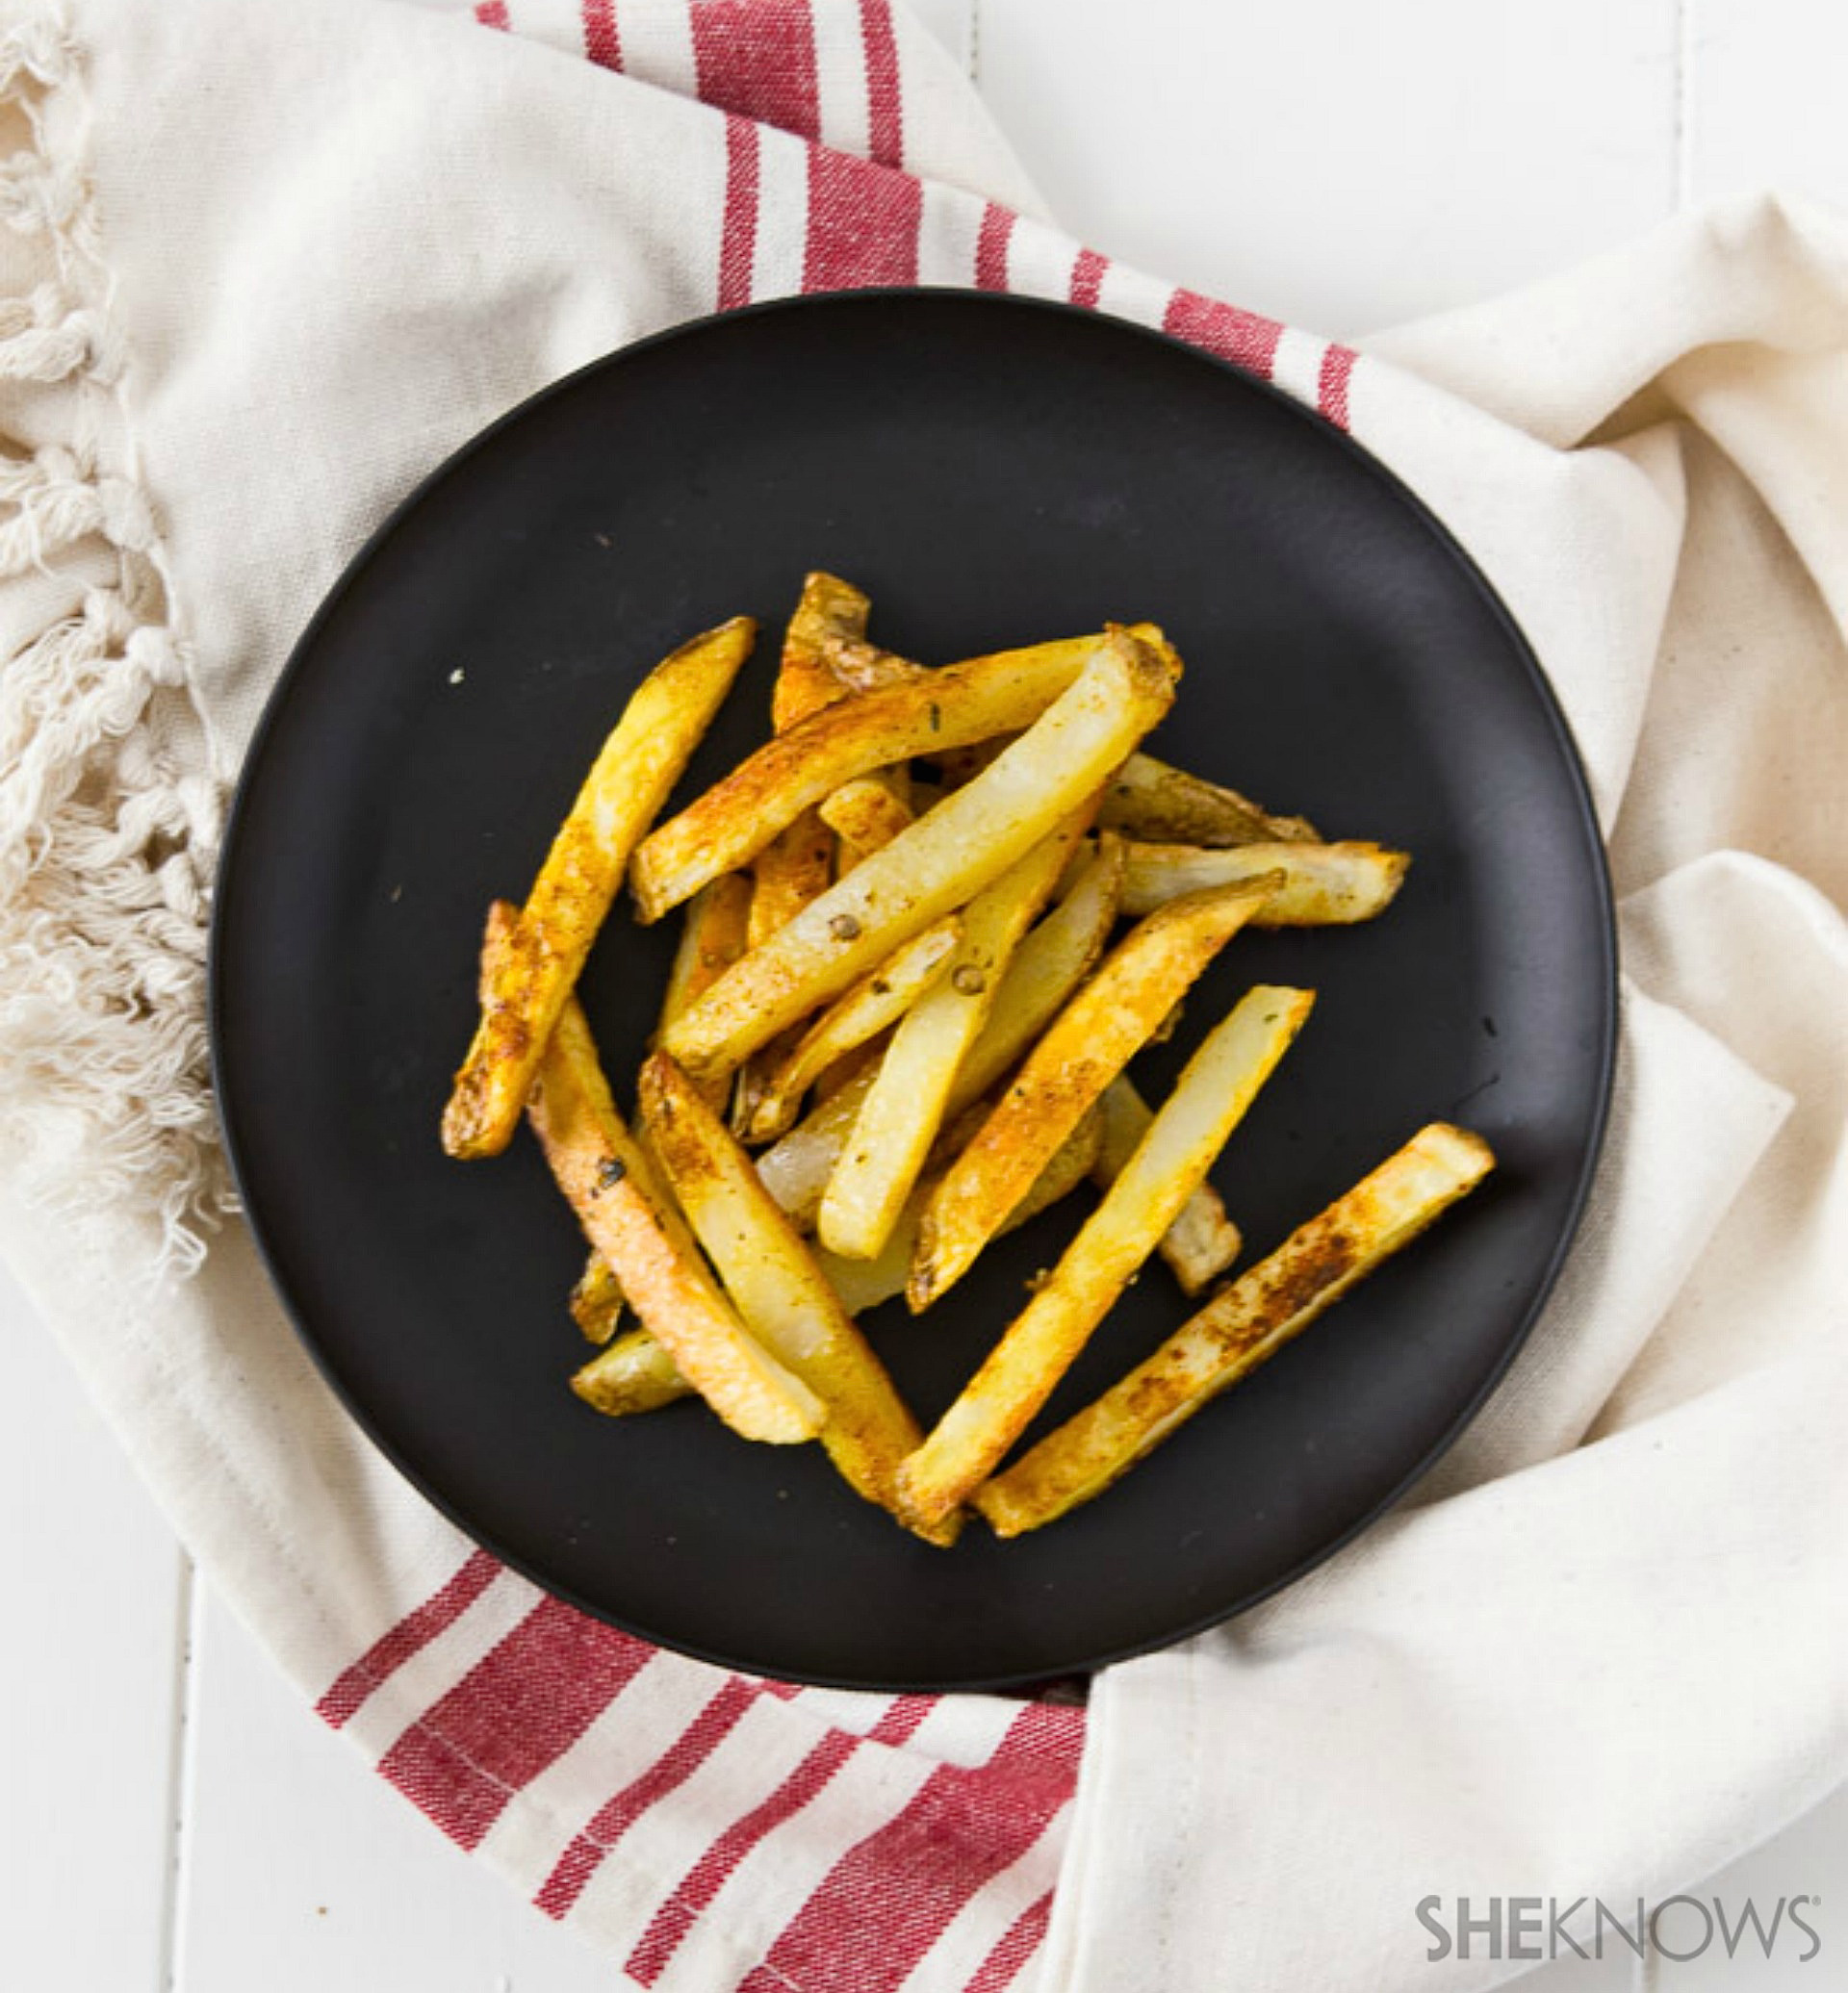 Indian-spiced fries